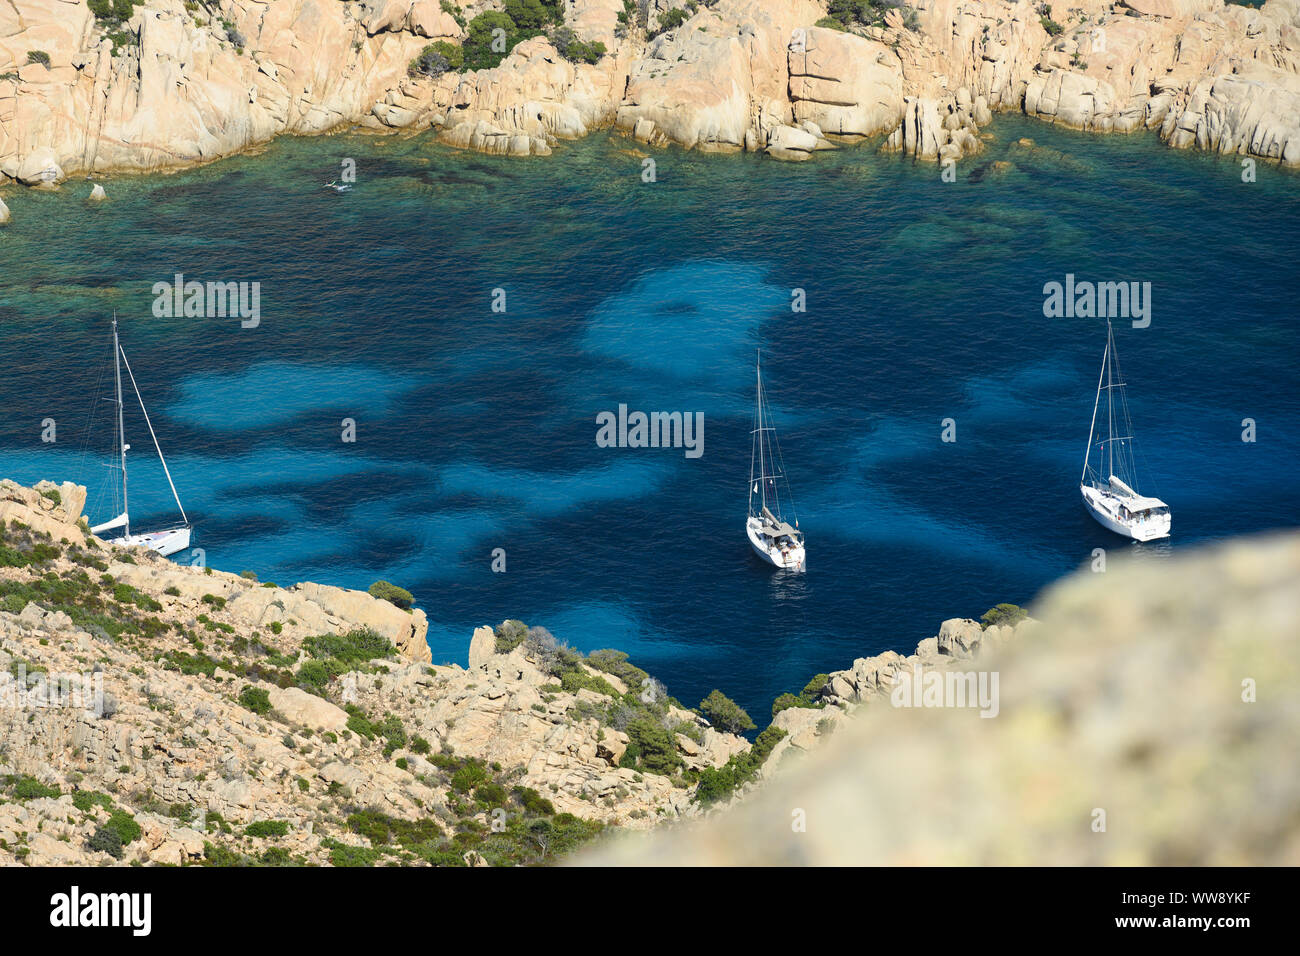 (Selective focus) View from above, stunning aerial view of three sailboats floating on a turquoise clear water. Cala Coticcio (also known as Tahiti). Stock Photo